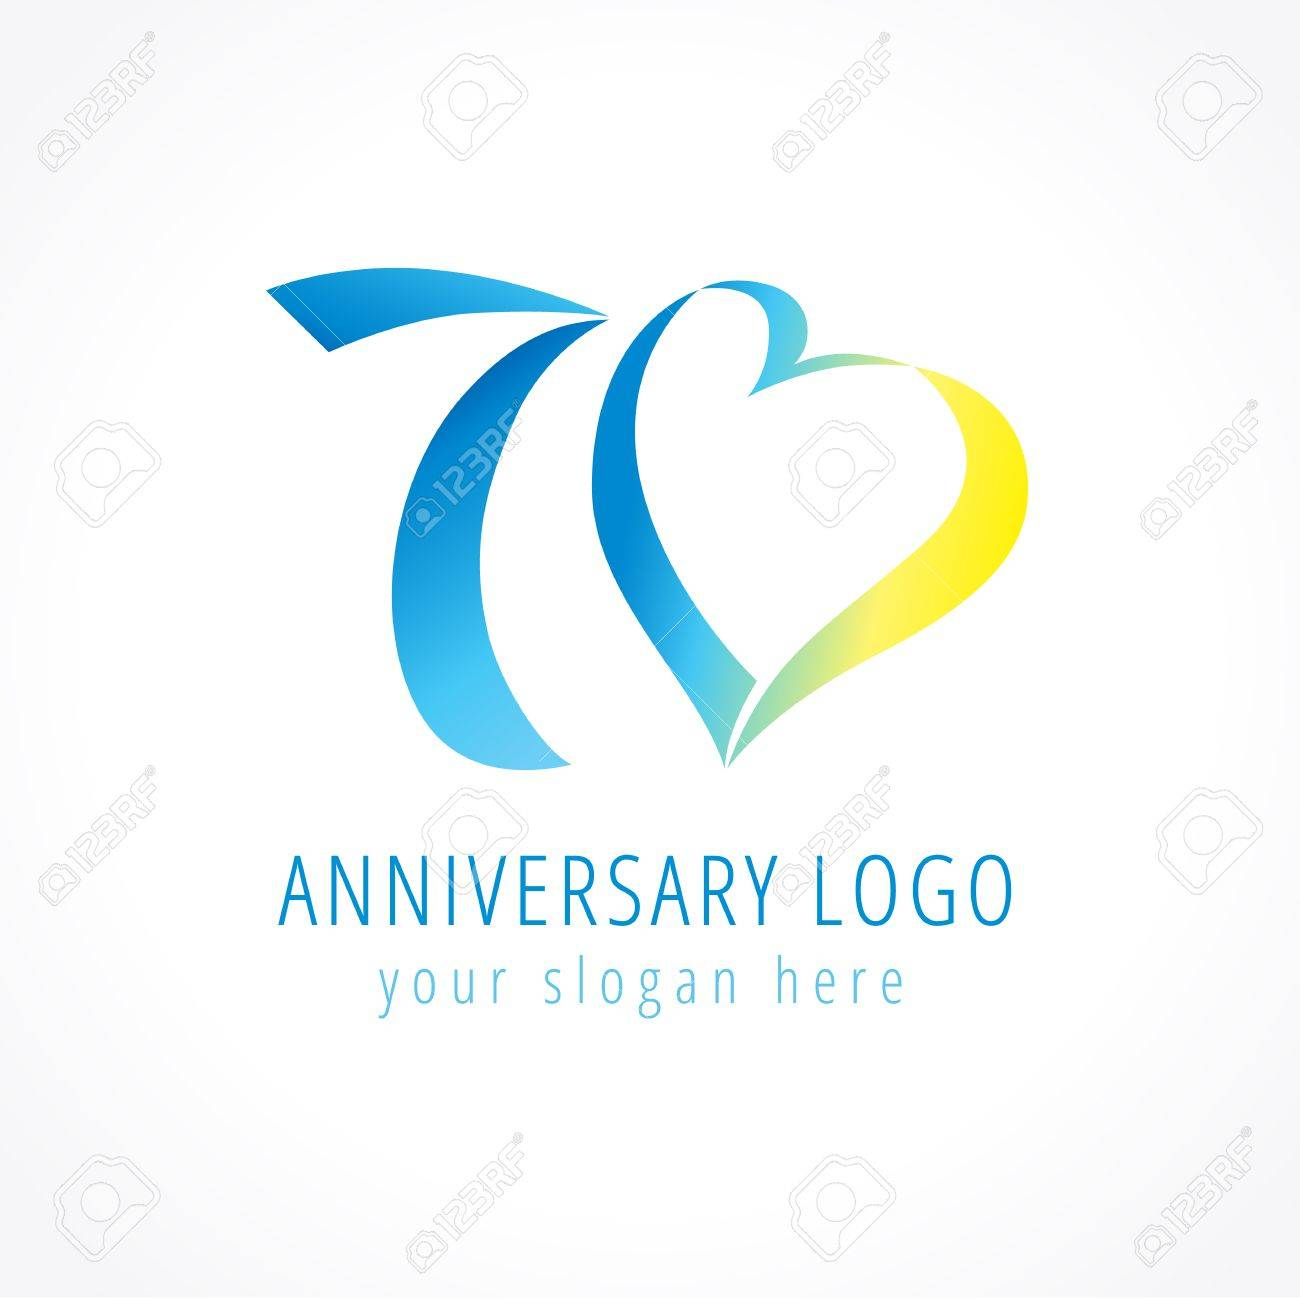 Anniversary 70 Years Old Hearts Celebrating Vector Digit Logo Birthday Greetings With Framed Tape Heart